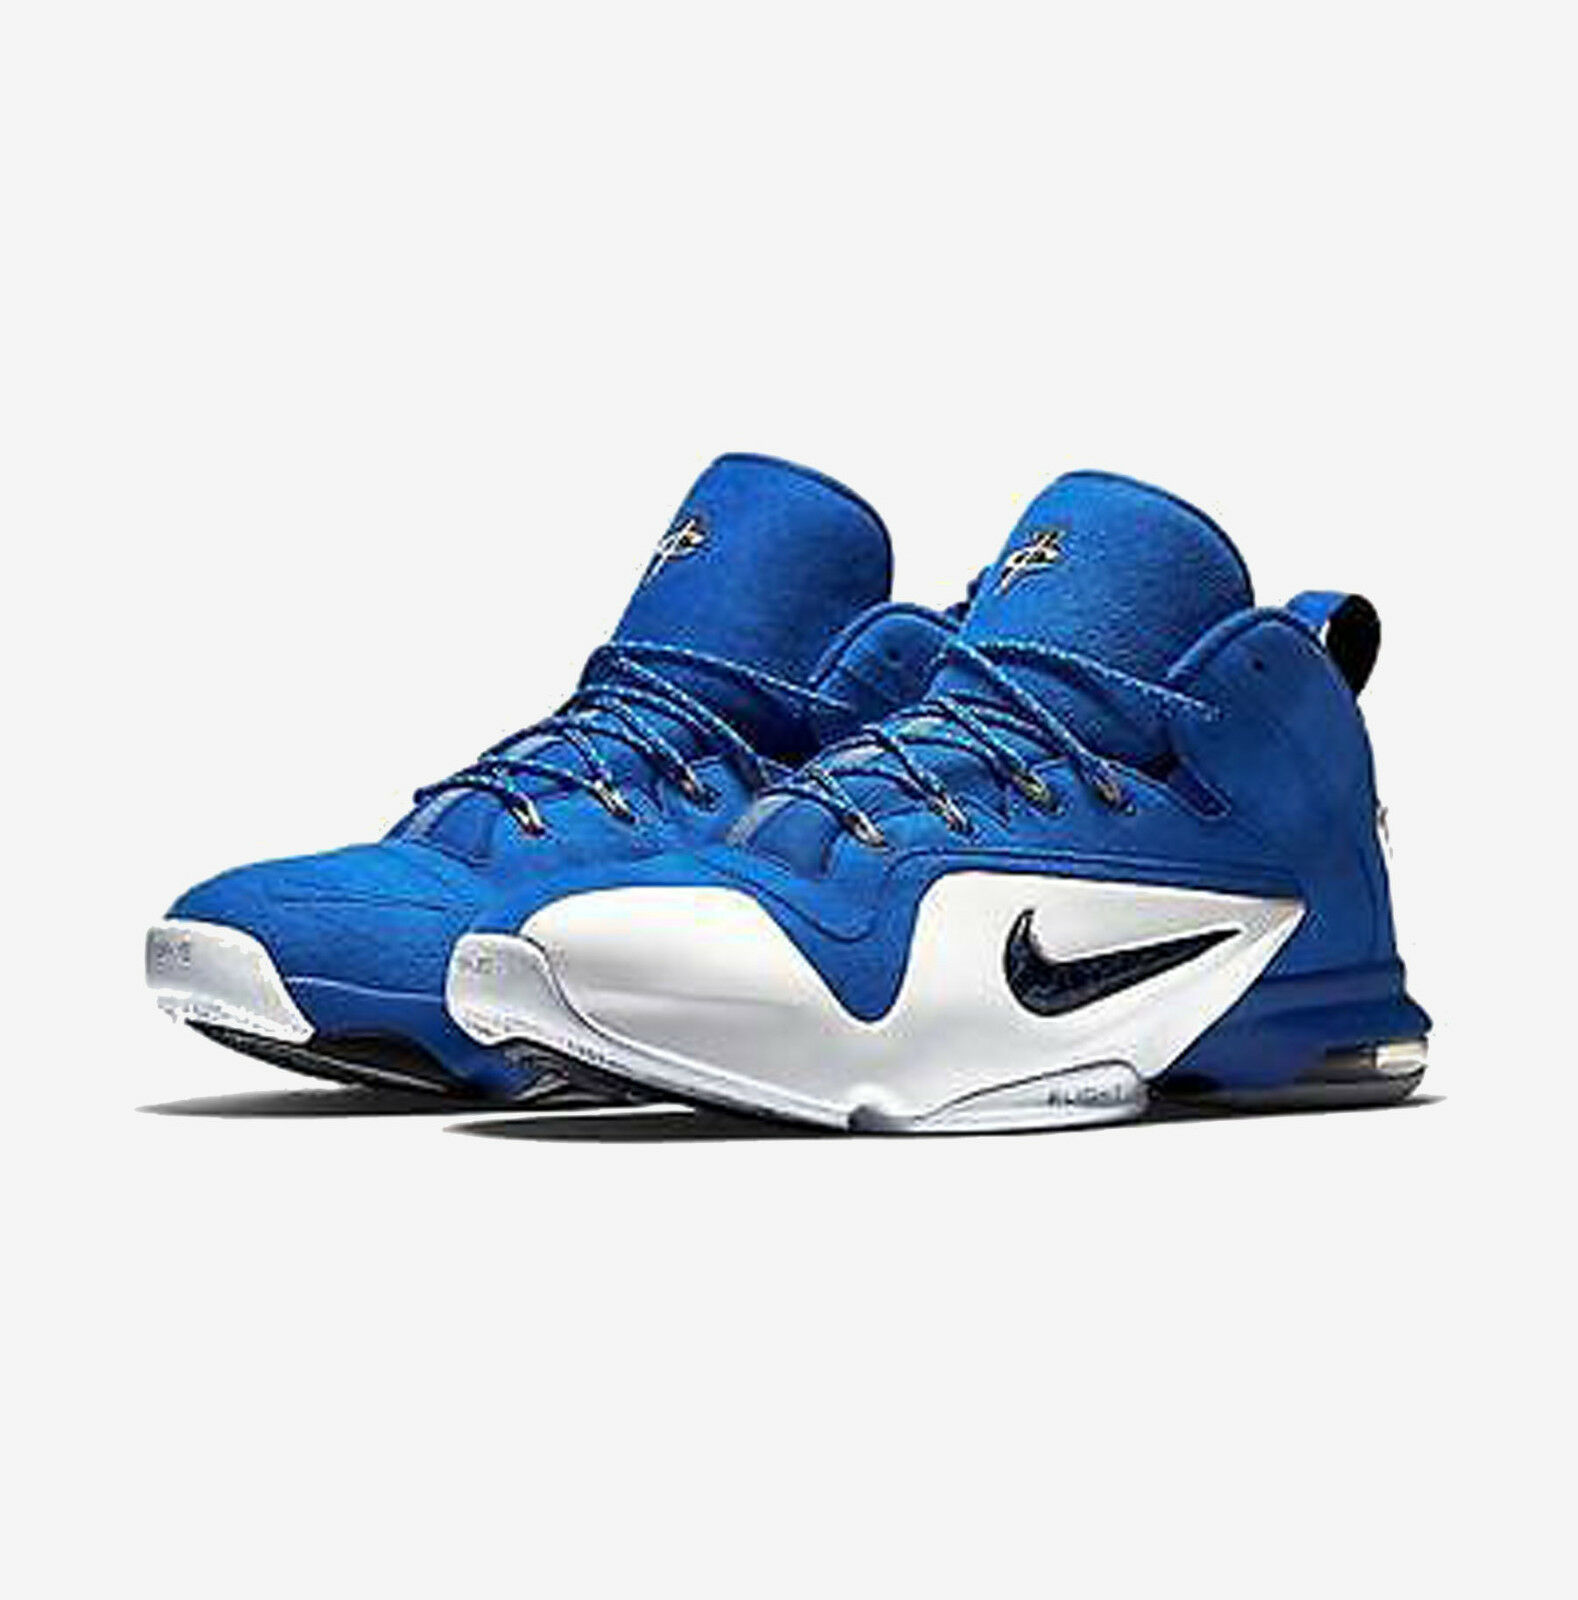 Nike Men Size 8.5 Zoom Penny VI Basketball Sneakers